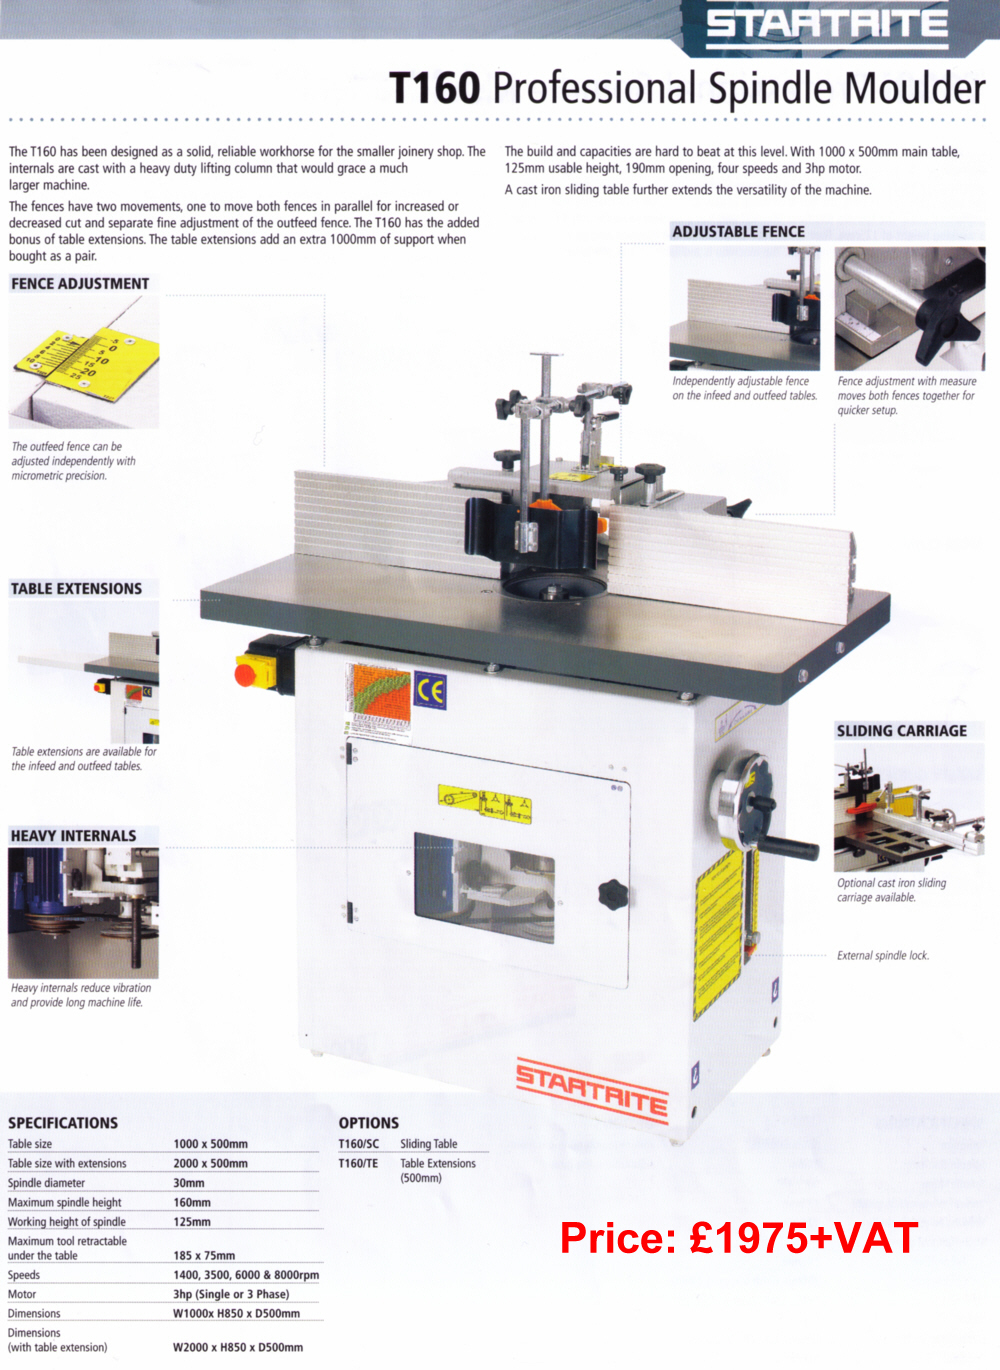 Startrite - T160 Professional Spindle Molder